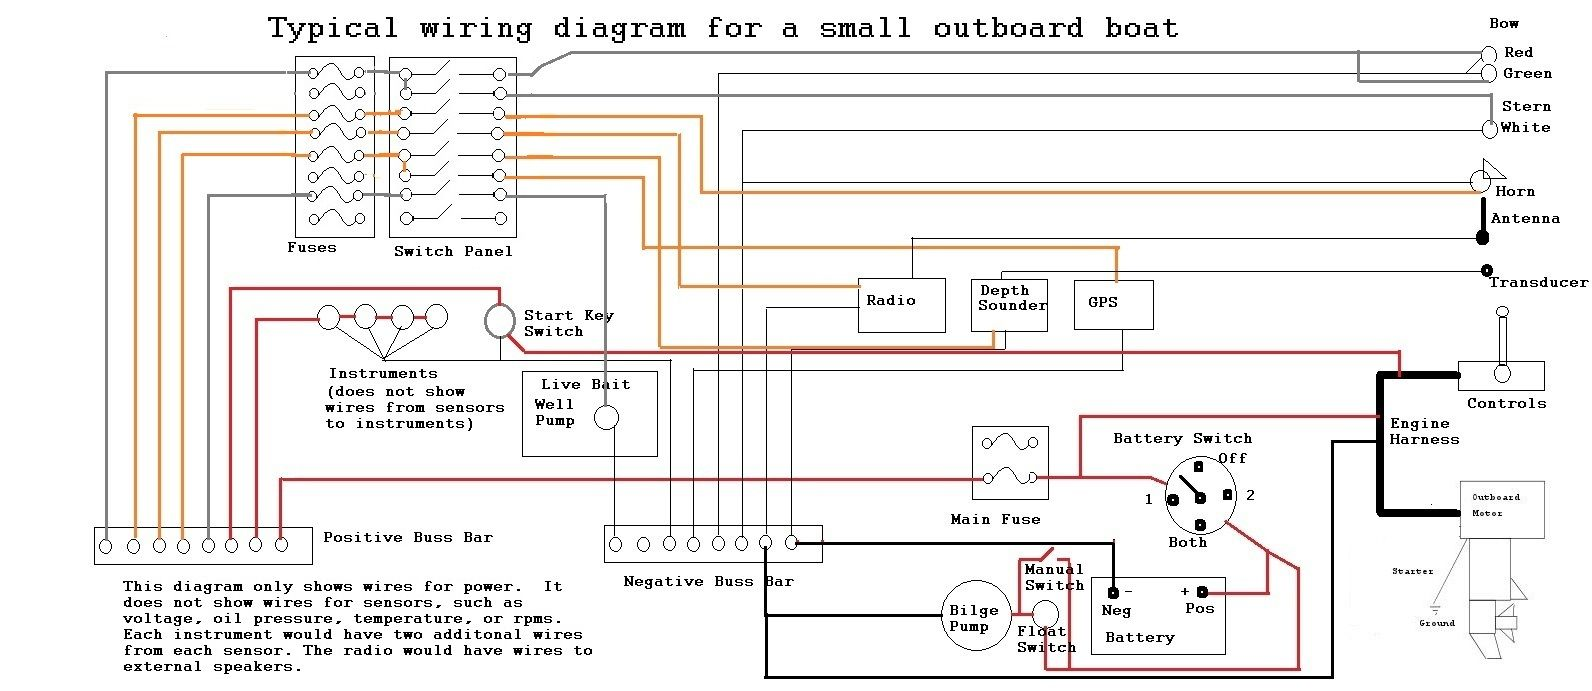 Wiring Diagram Small Outboard Boat Wiring Boat Building Electrical Wiring